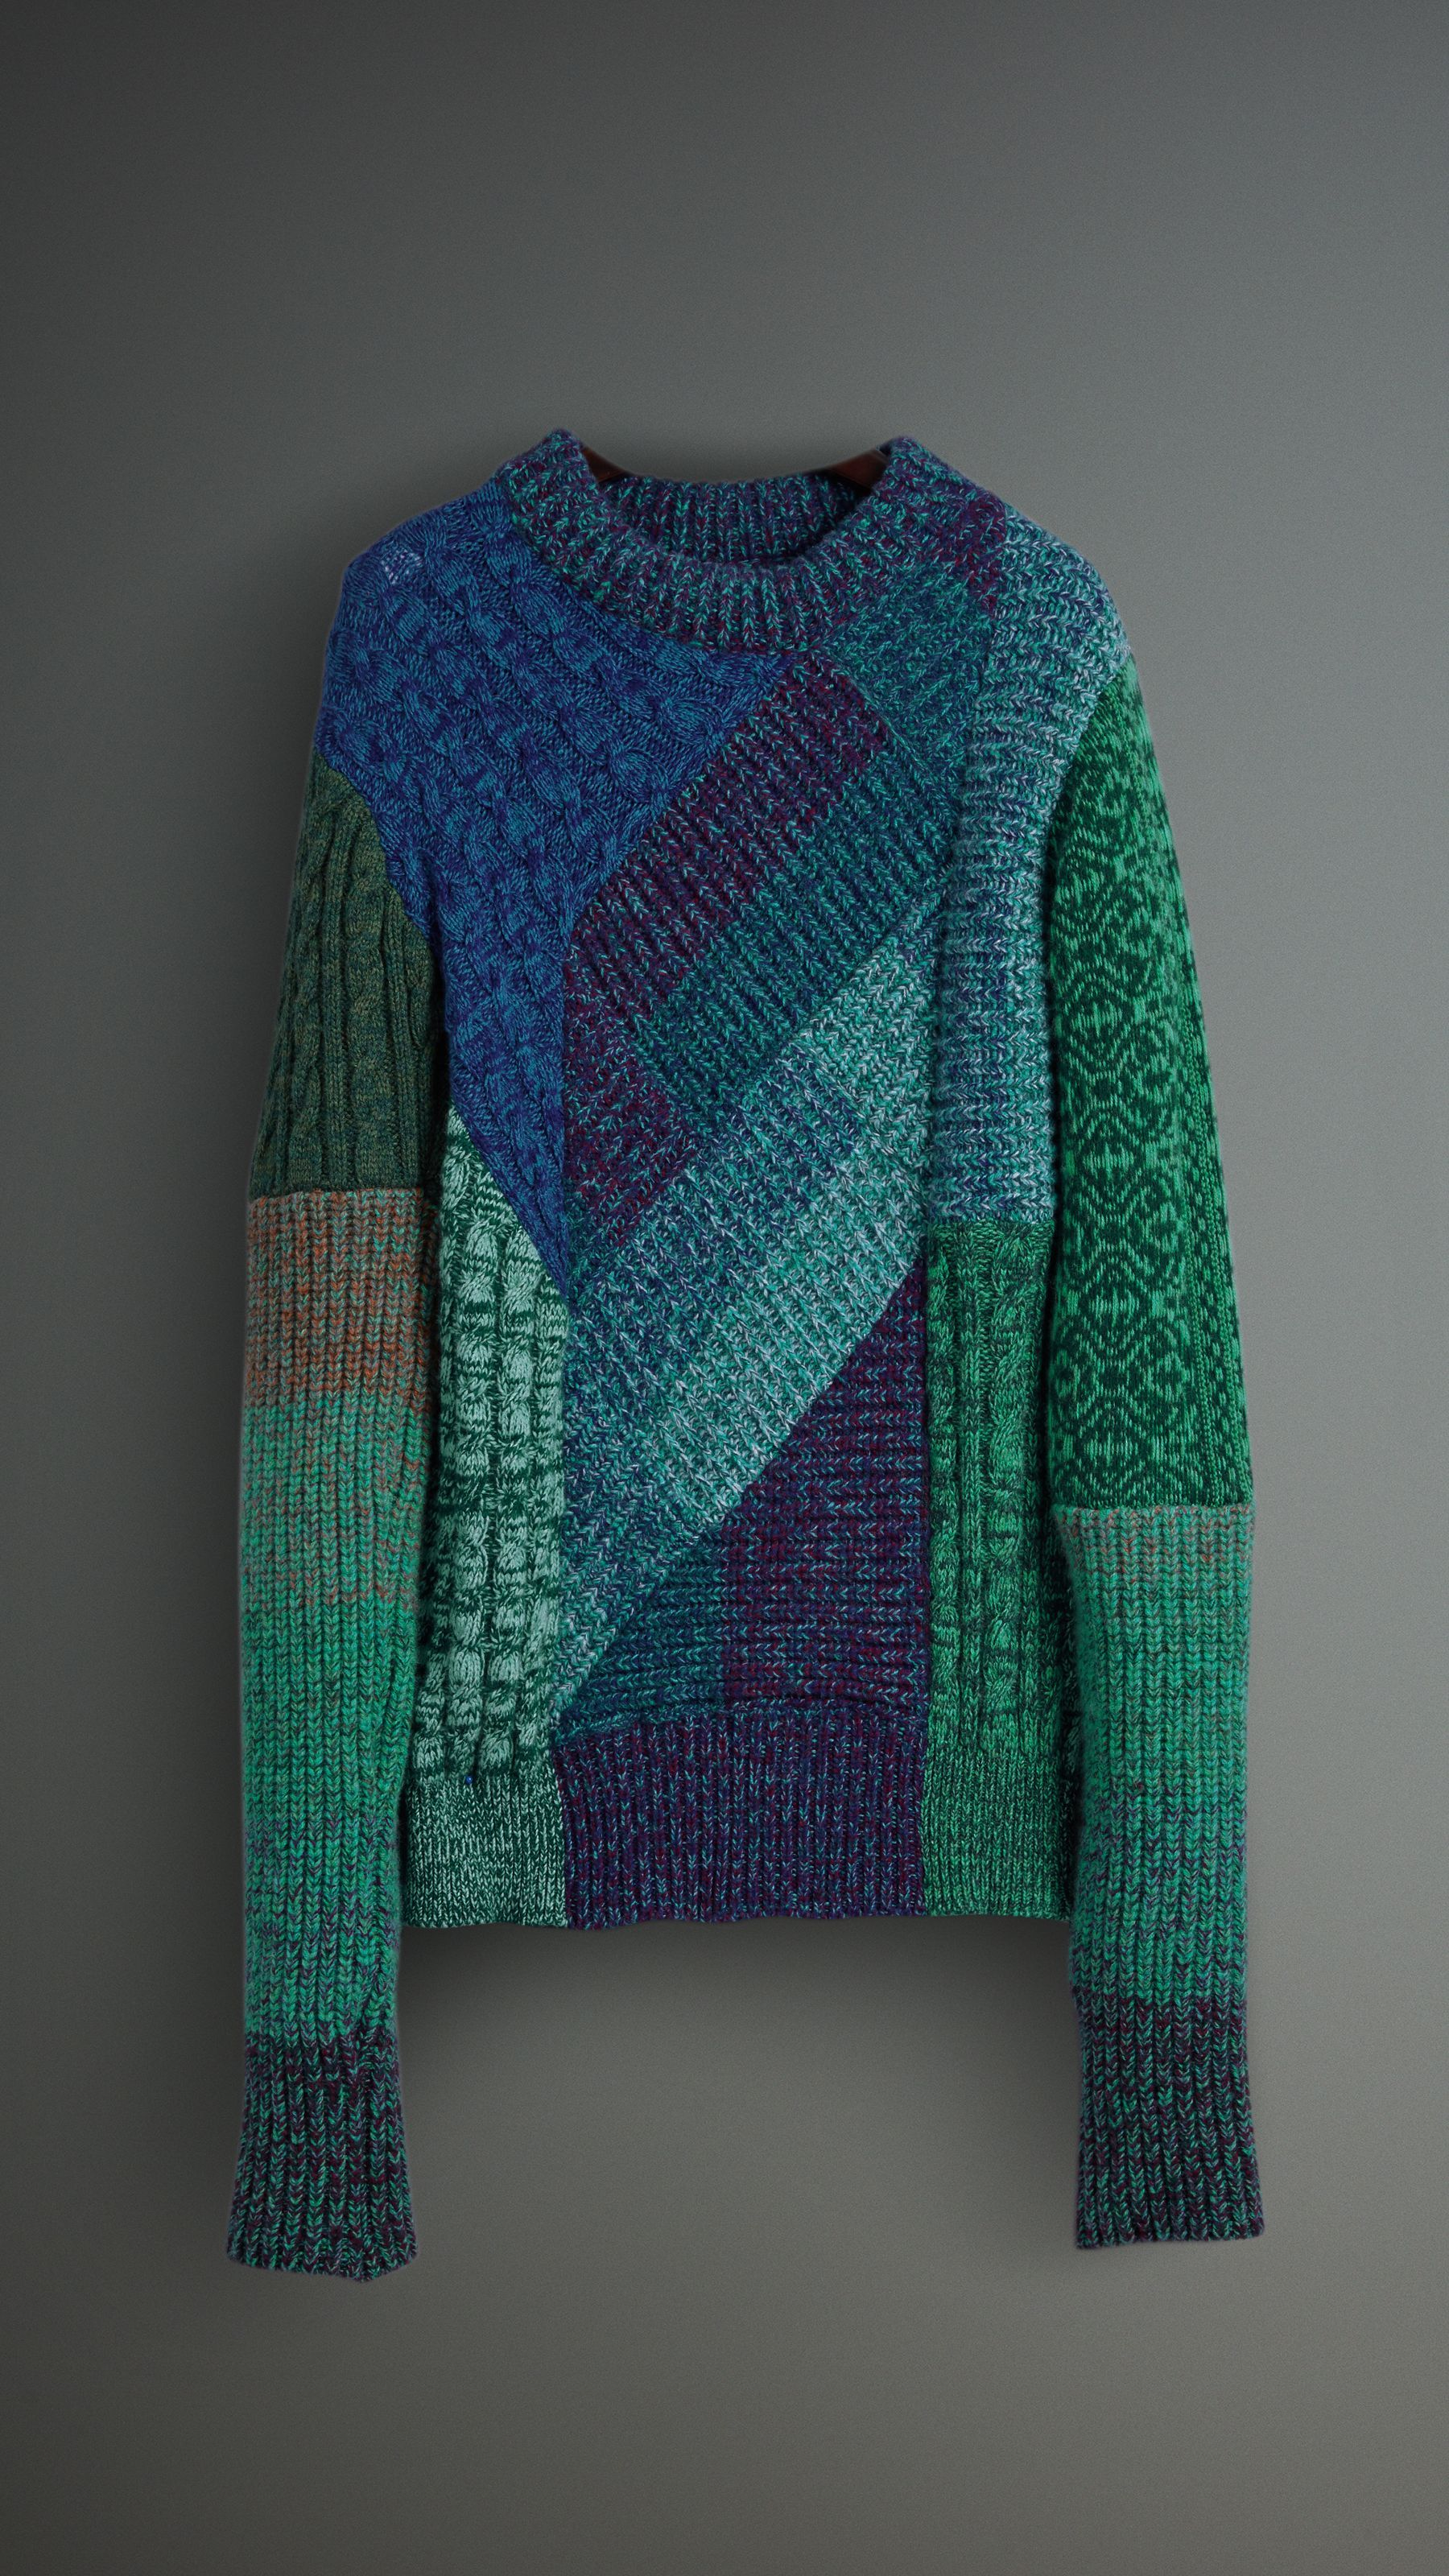 Men's Knitted Sweaters & Cardigans   Одежда,образы ...